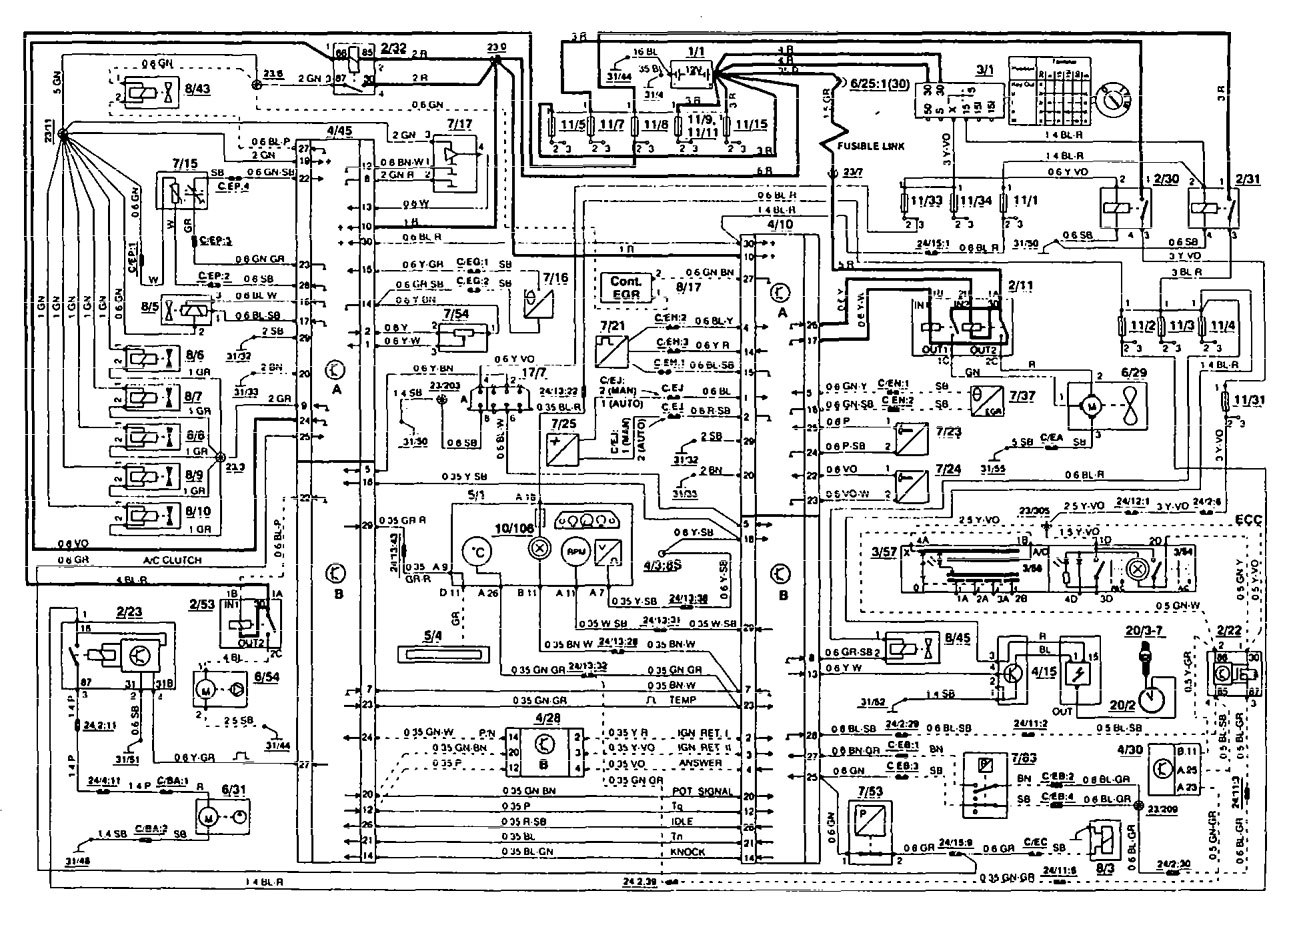 volvo wiring diagrams 850 single phase fan motor diagram with capacitor 1994 fuel controls